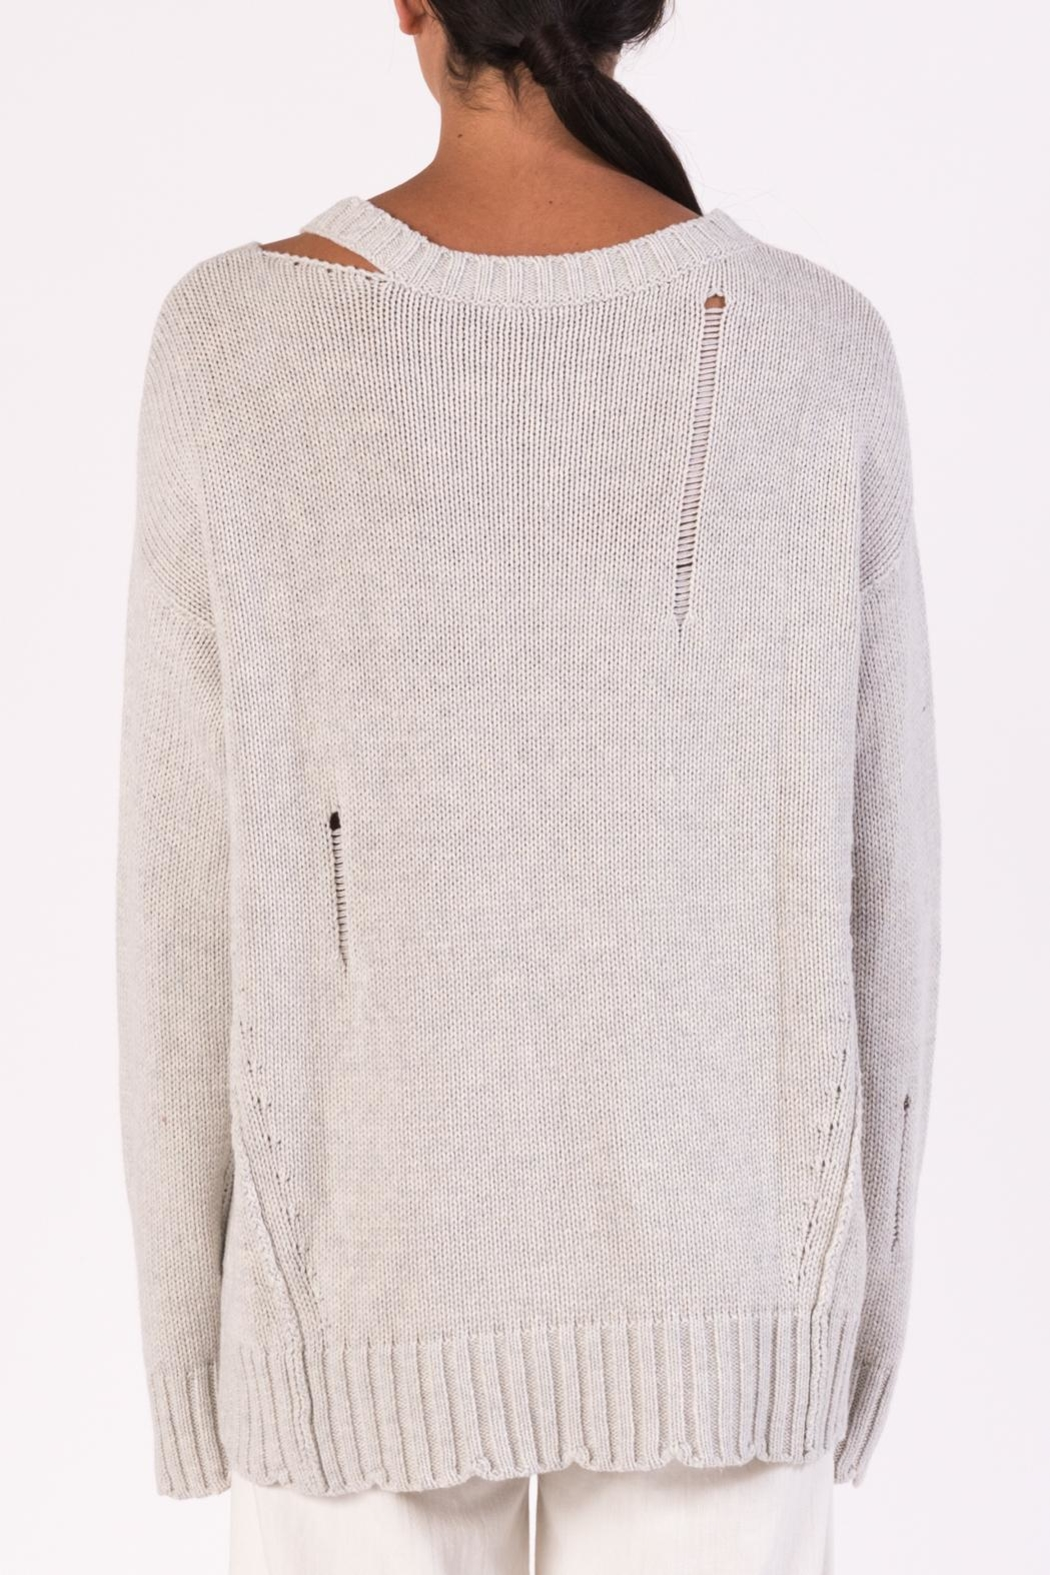 Margaret O'Leary Cotton Grunge Sweater - Side Cropped Image